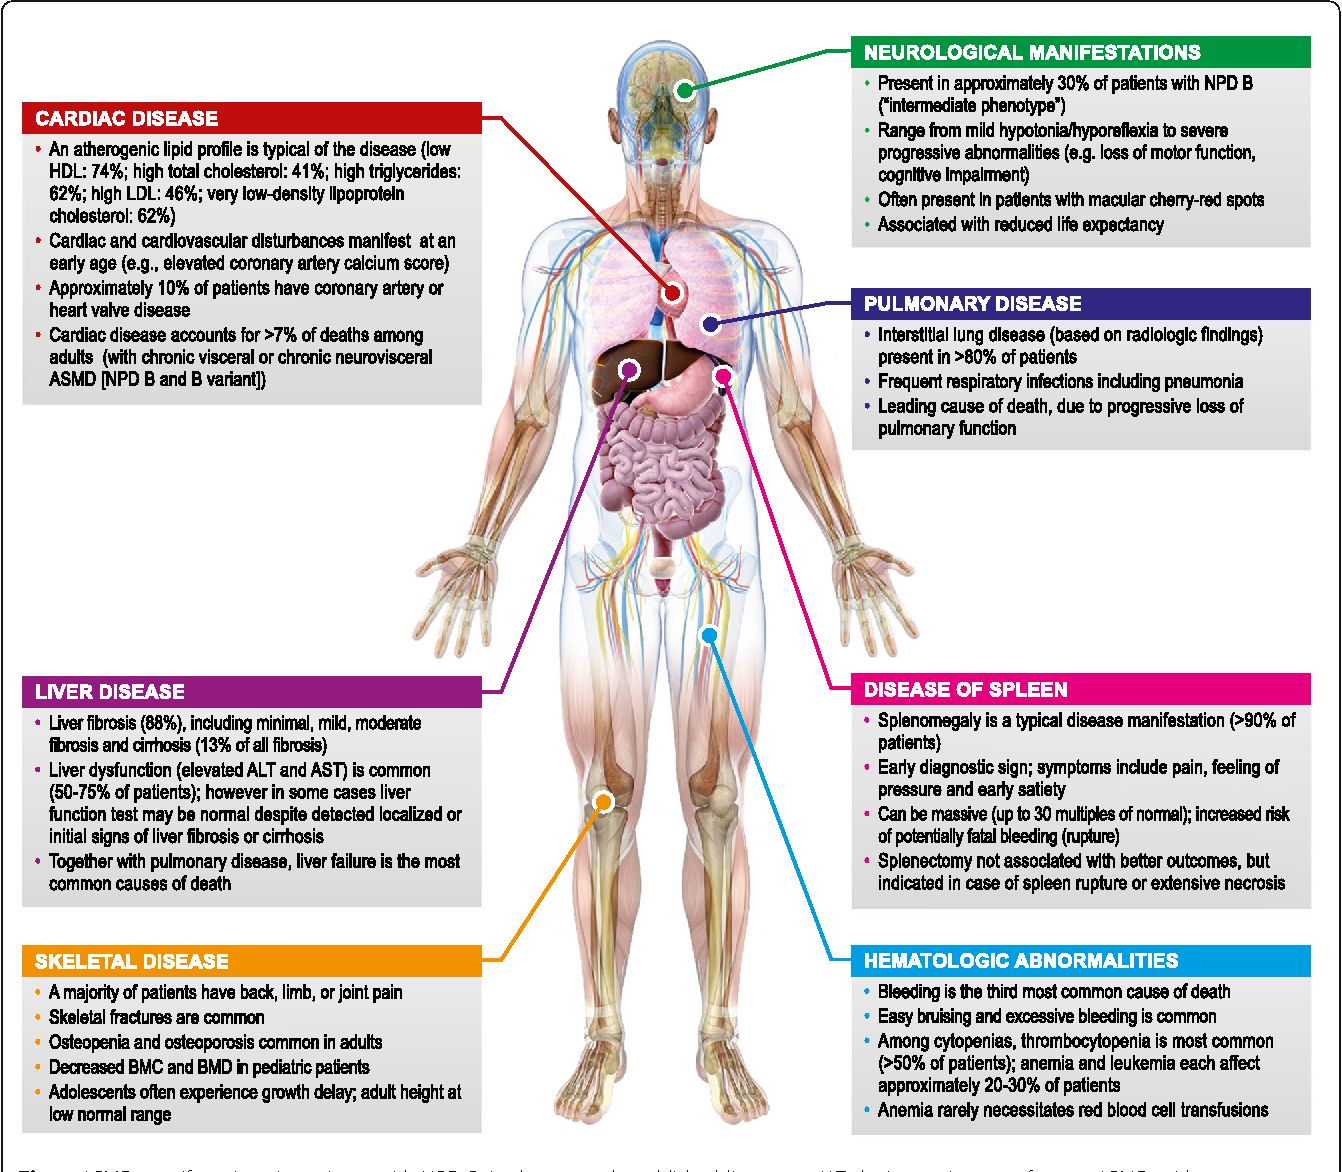 Disease Manifestations And Burden Of Illness In Patients With Acid